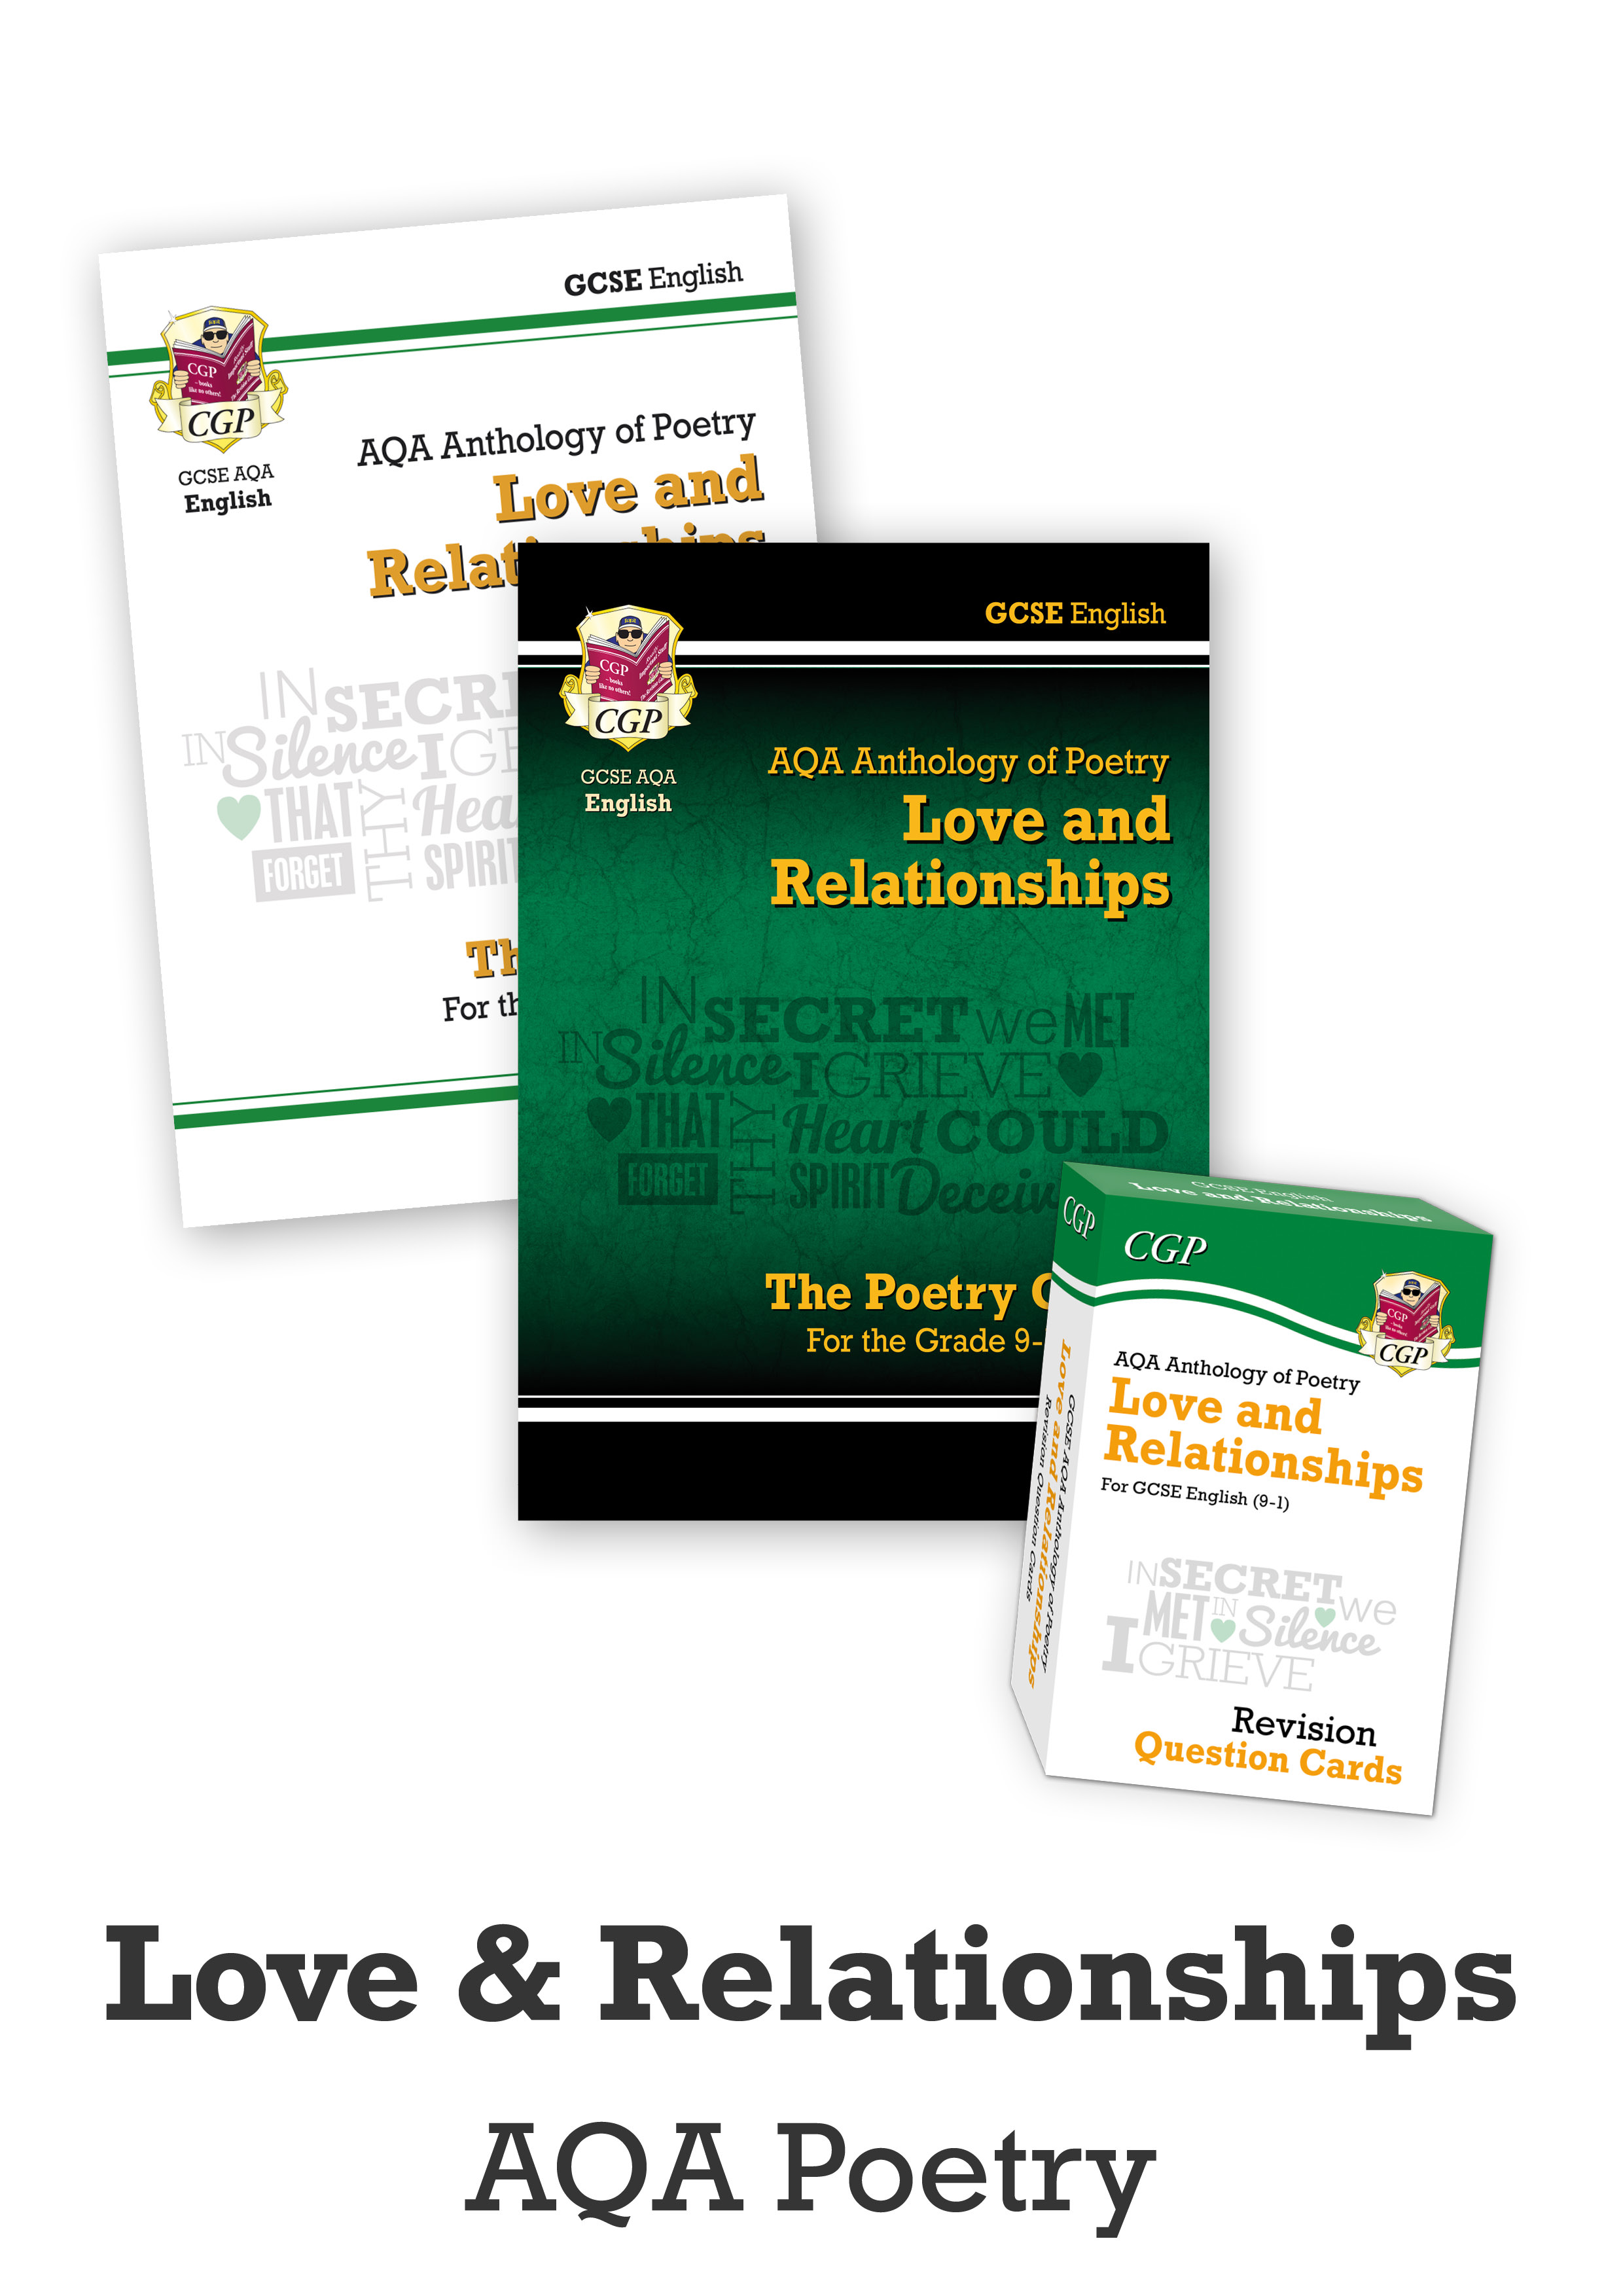 ARHCUB41 - GCSE Home Learning Essentials Bundle: English Literature AQA Poetry - Love & Relationship